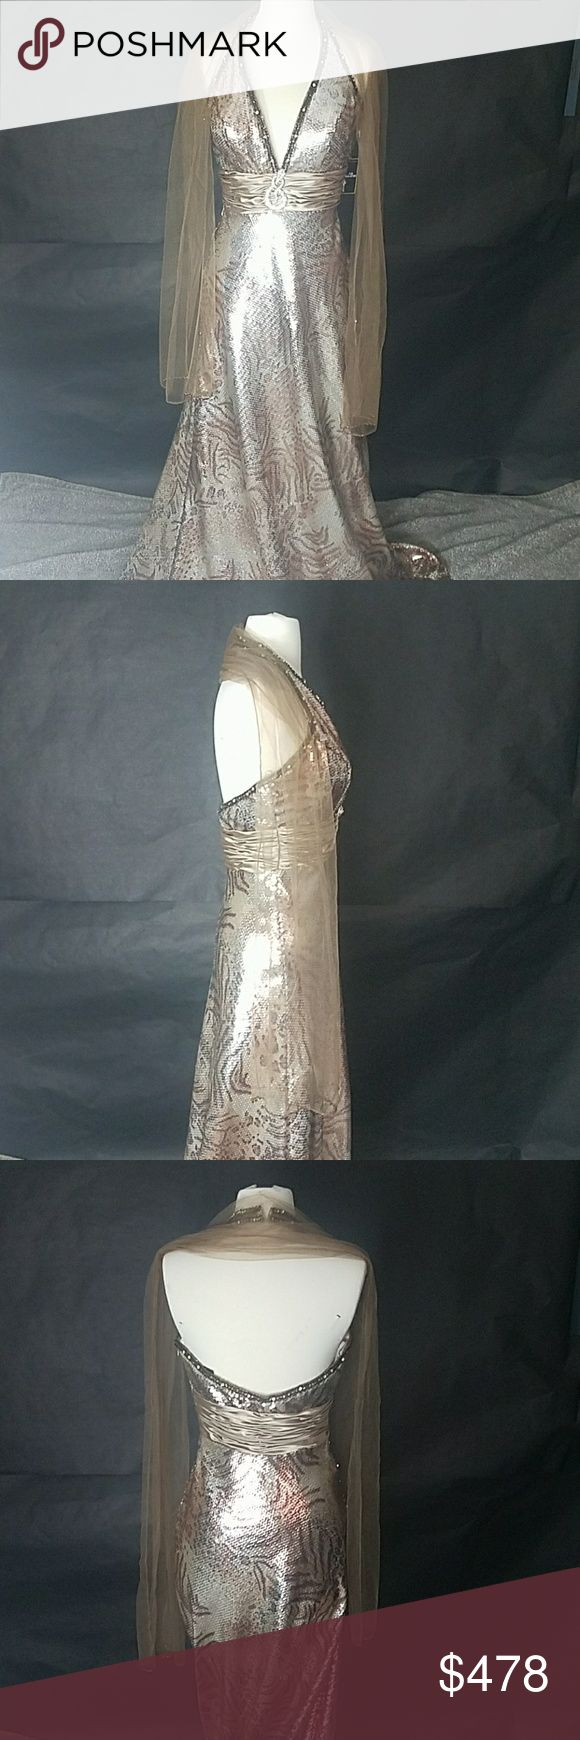 Coli Formal Sequin Animal Print Dress Authentic  Coli Size 6  Originally $578 Great condition Beautiful snake embeleshment on front band of dress  Great for special occassions, as an evening gown, prom, homecoming, charity ball or the red carpet!  AB478 Coli Dresses Prom